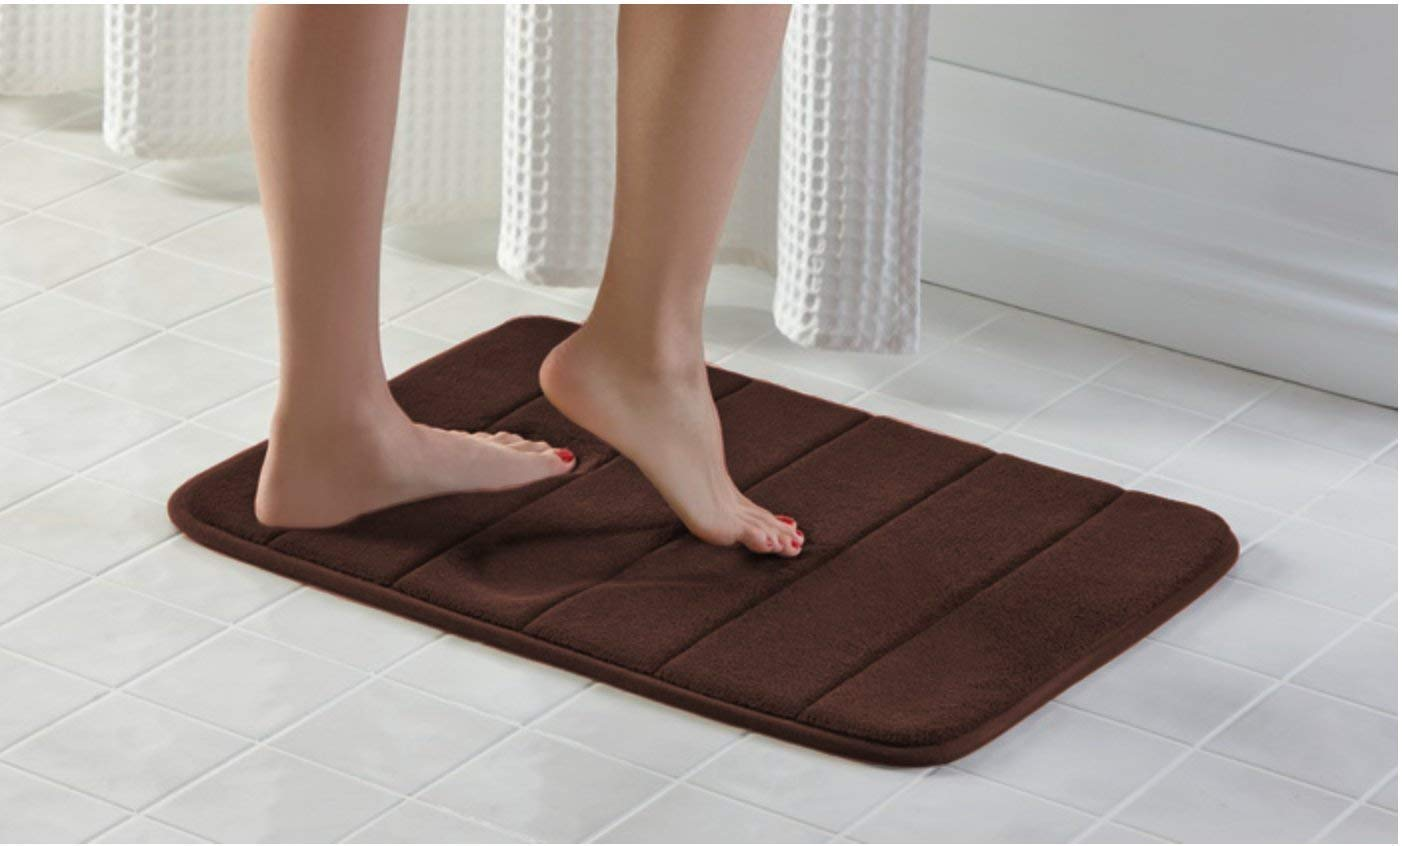 Townhouse Memory Foam Bath Mat Soft, Luxury Cushioned Pad for Bathroom Floors ,Non-Slip, Absorbent, Baby Shower Mats , Cushions and Dries Feet,Bathroom Rug Carpet – Brown 17X24